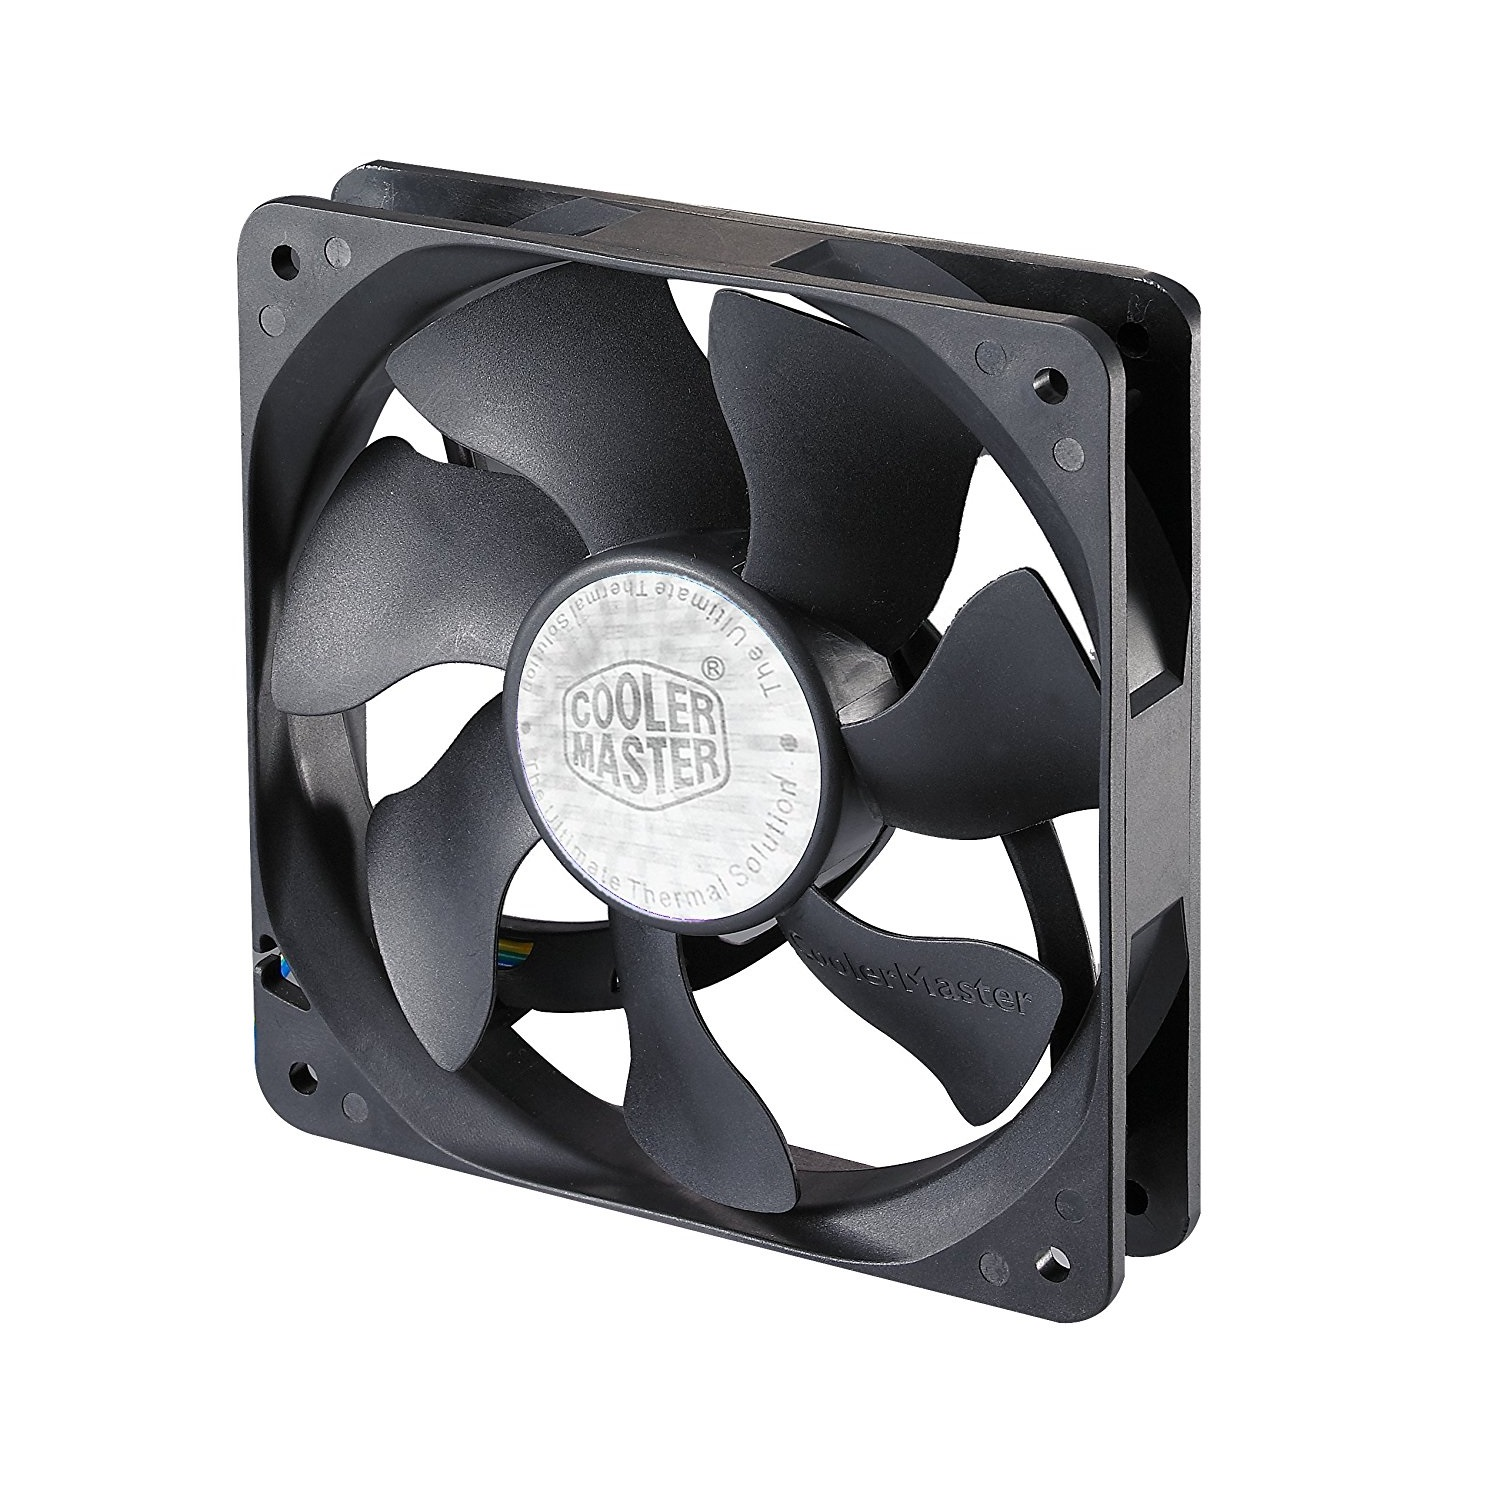 Cooler Master Blade Master 80 PWM Cooling Fan